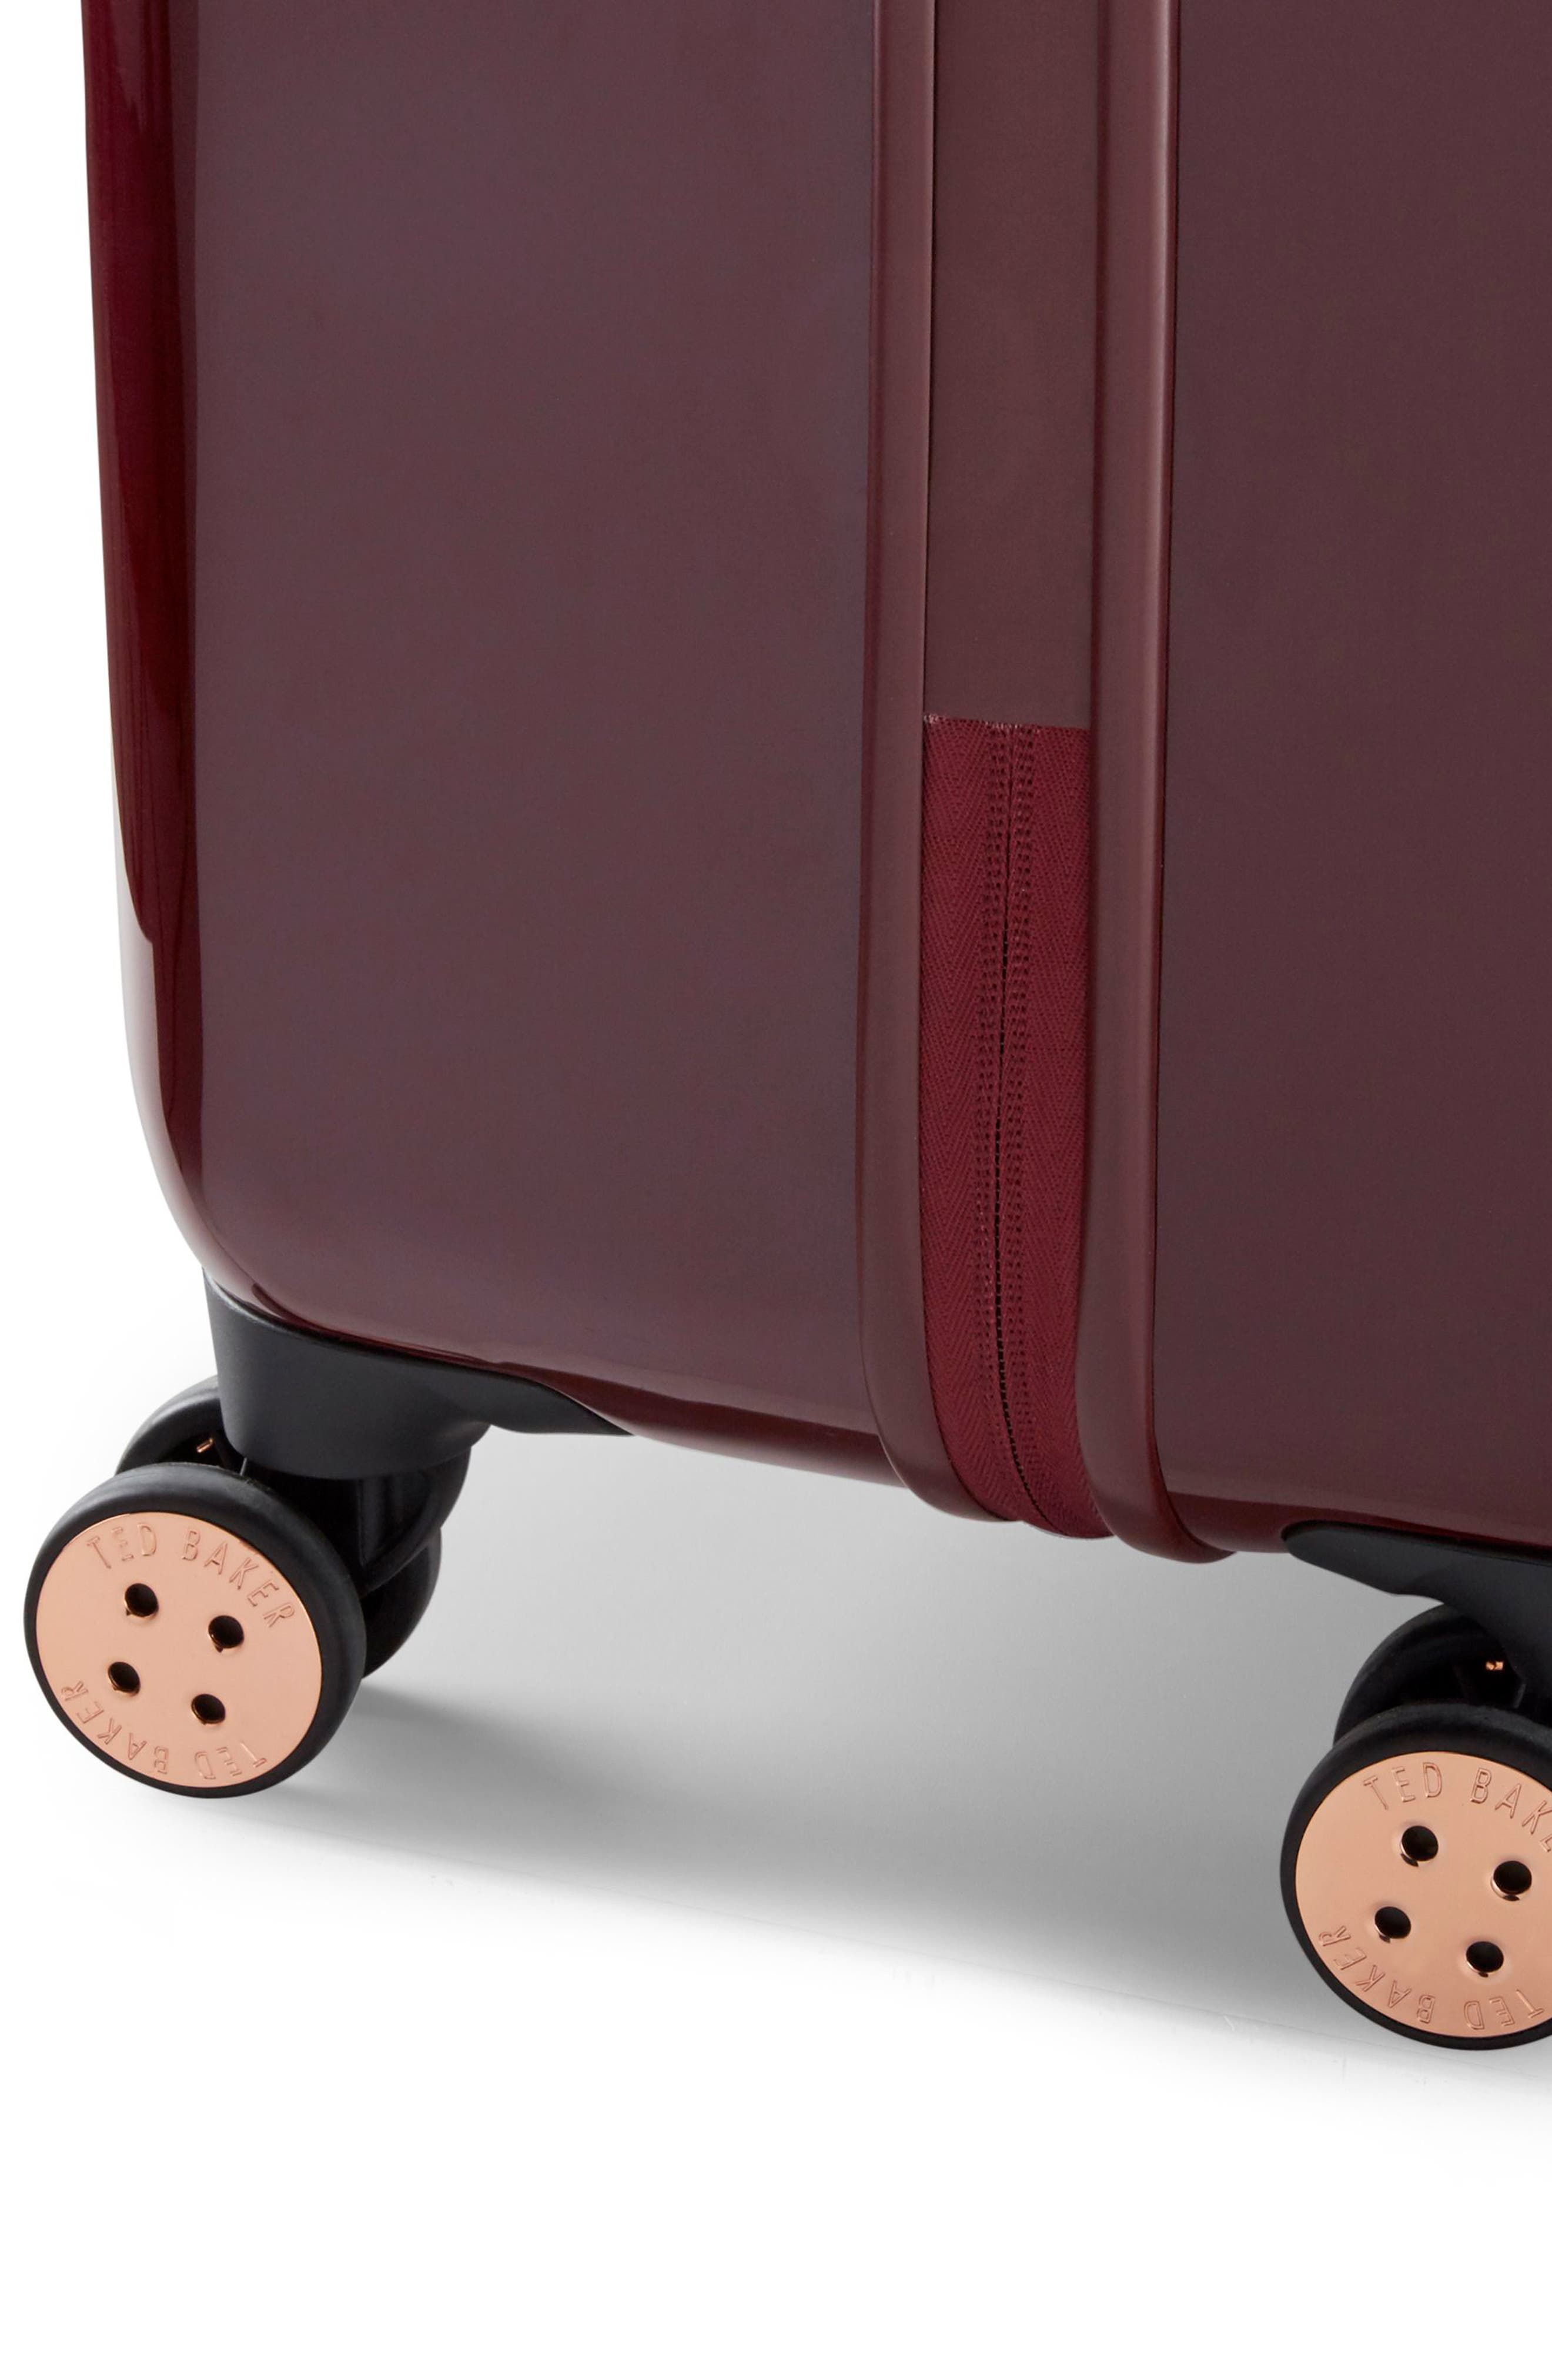 Large Porcelain Rose 31-Inch Hard Shell Spinner Suitcase,                             Alternate thumbnail 8, color,                             Burgundy